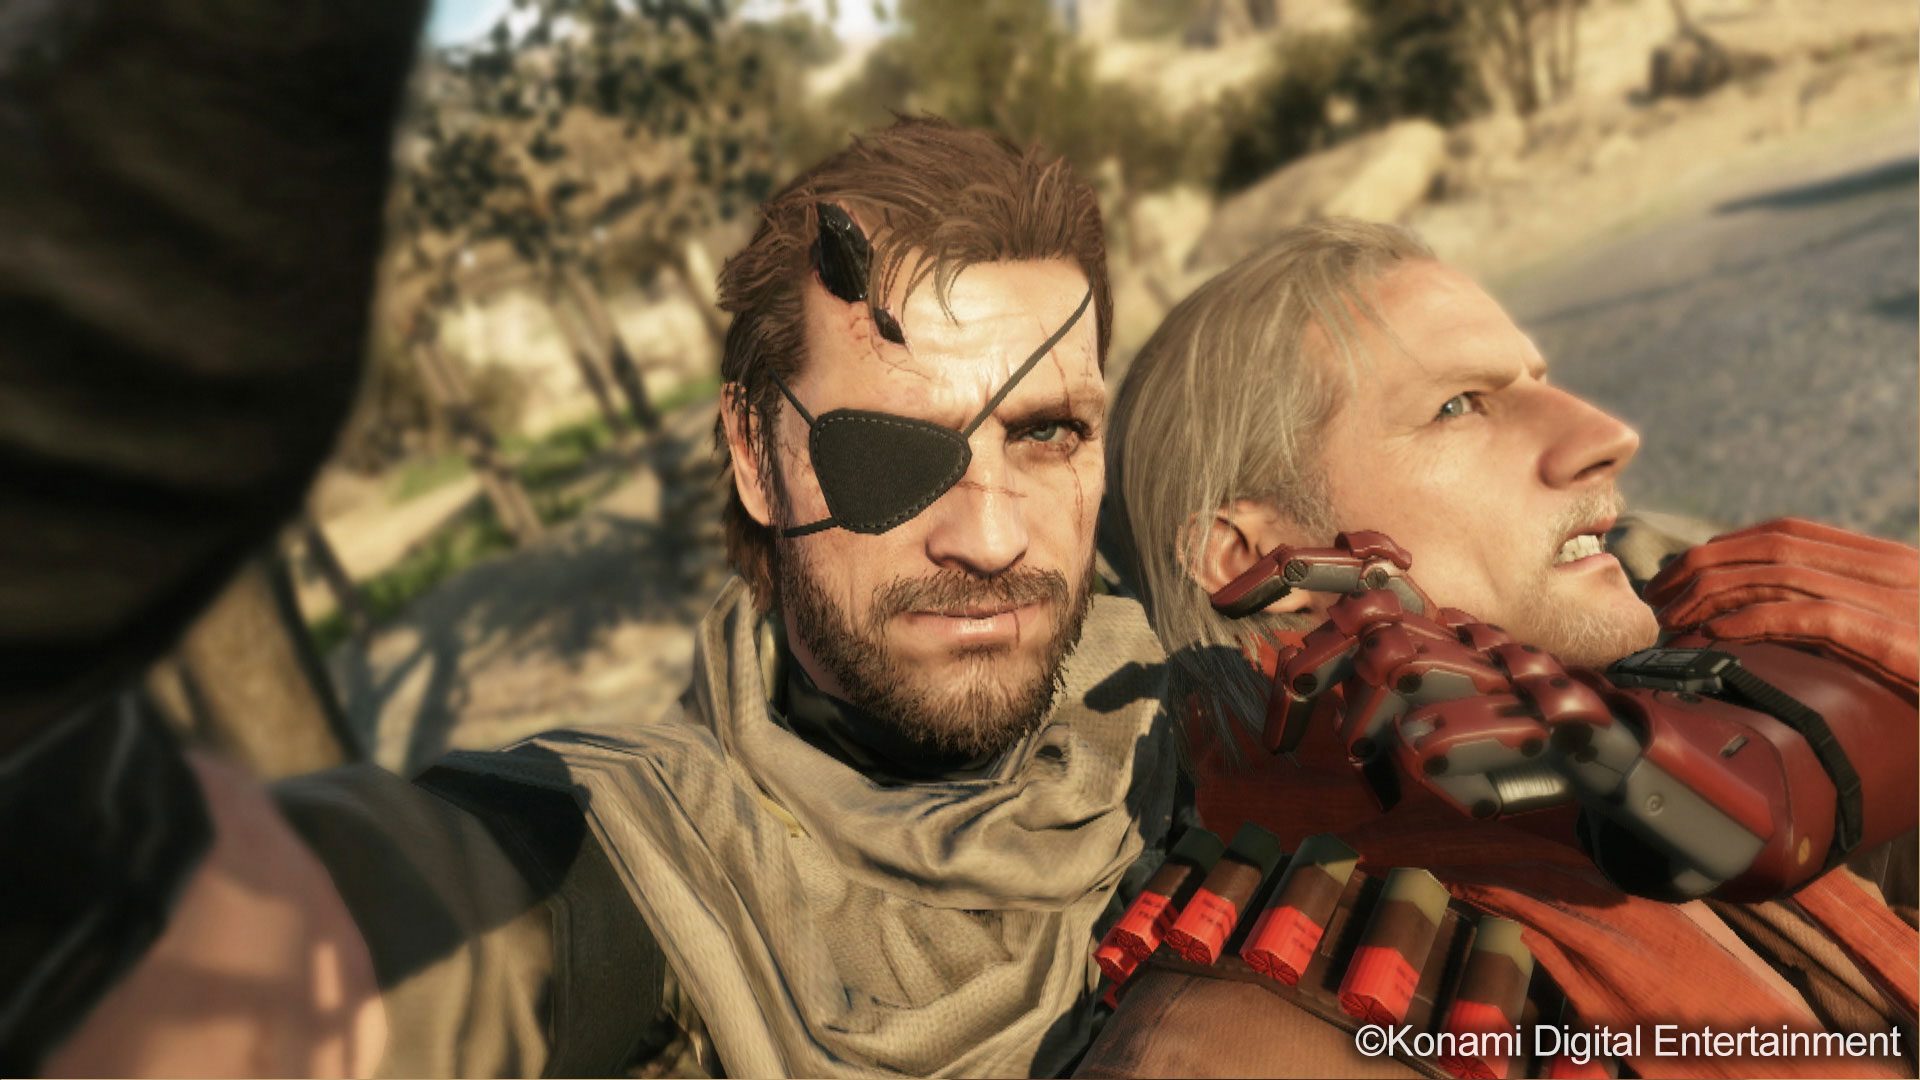 ¿MGS V The Phantom Pain para febrero?